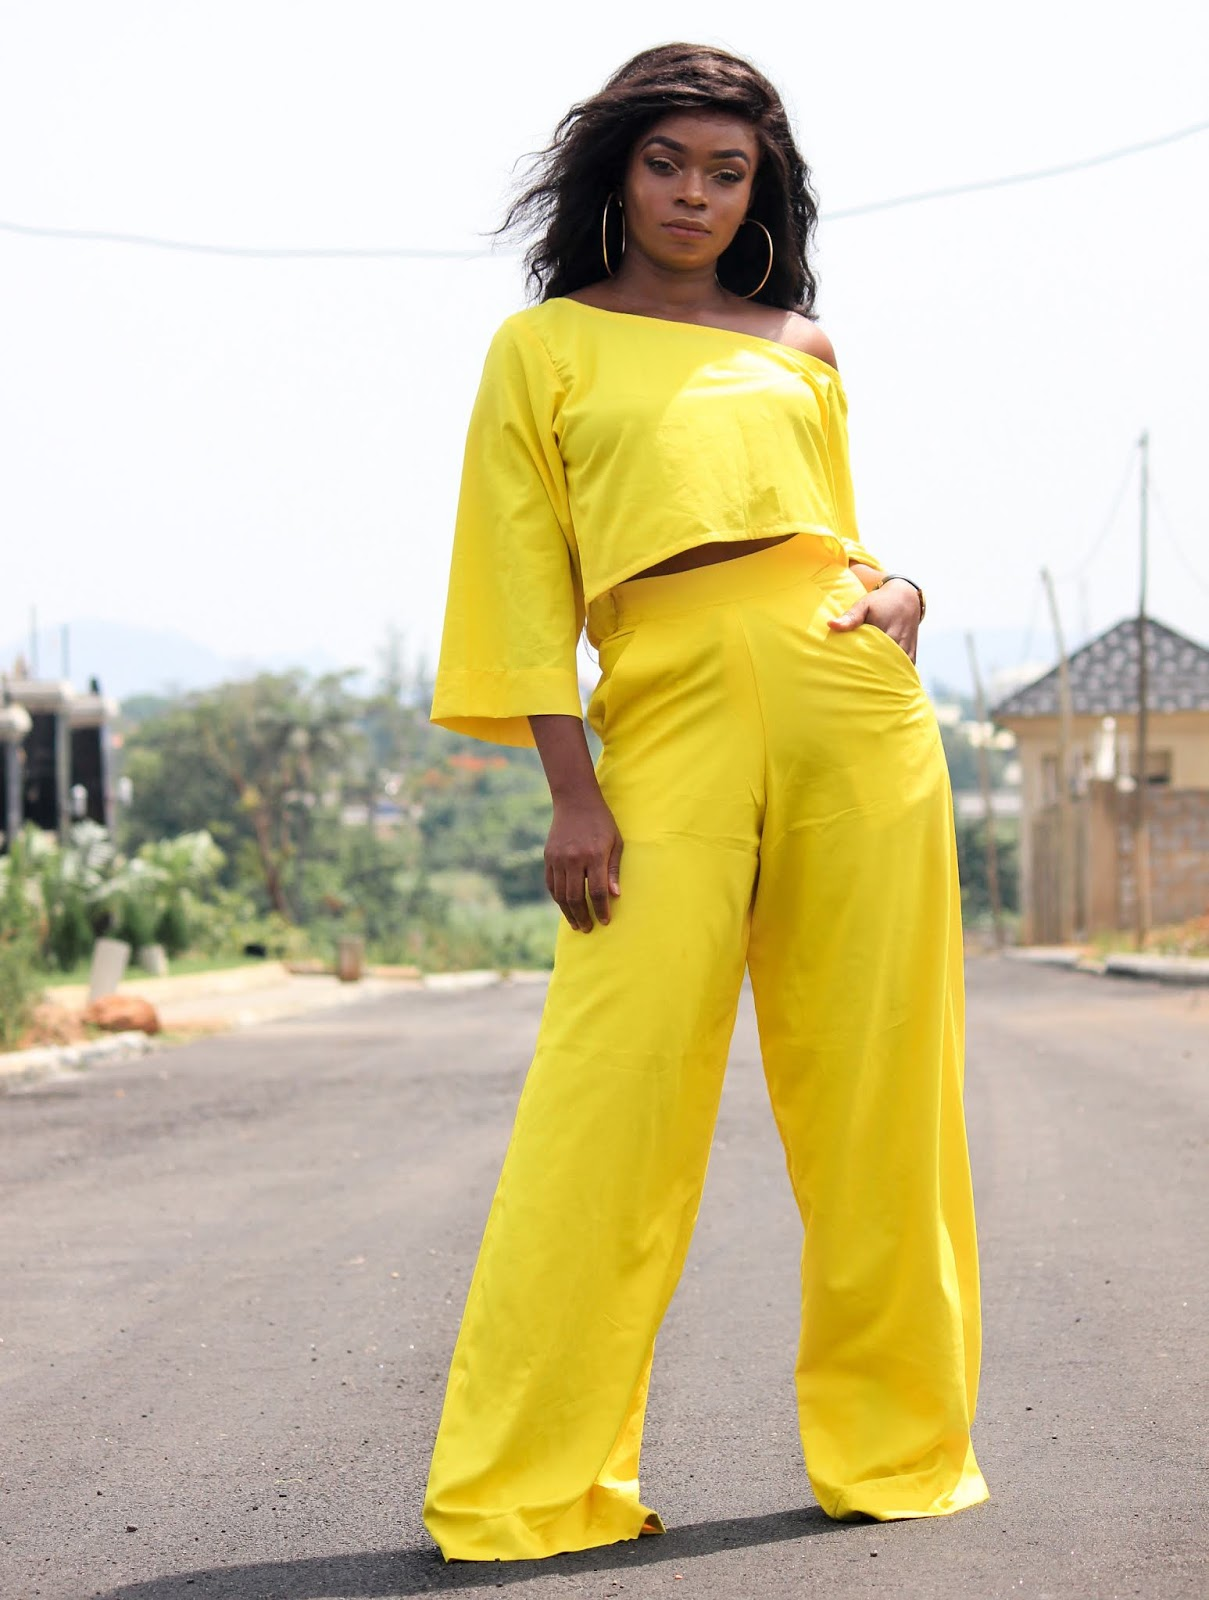 YELLOW YELLOW PANTS + TOP - Yellow Pants and Yellow Top by Porshher